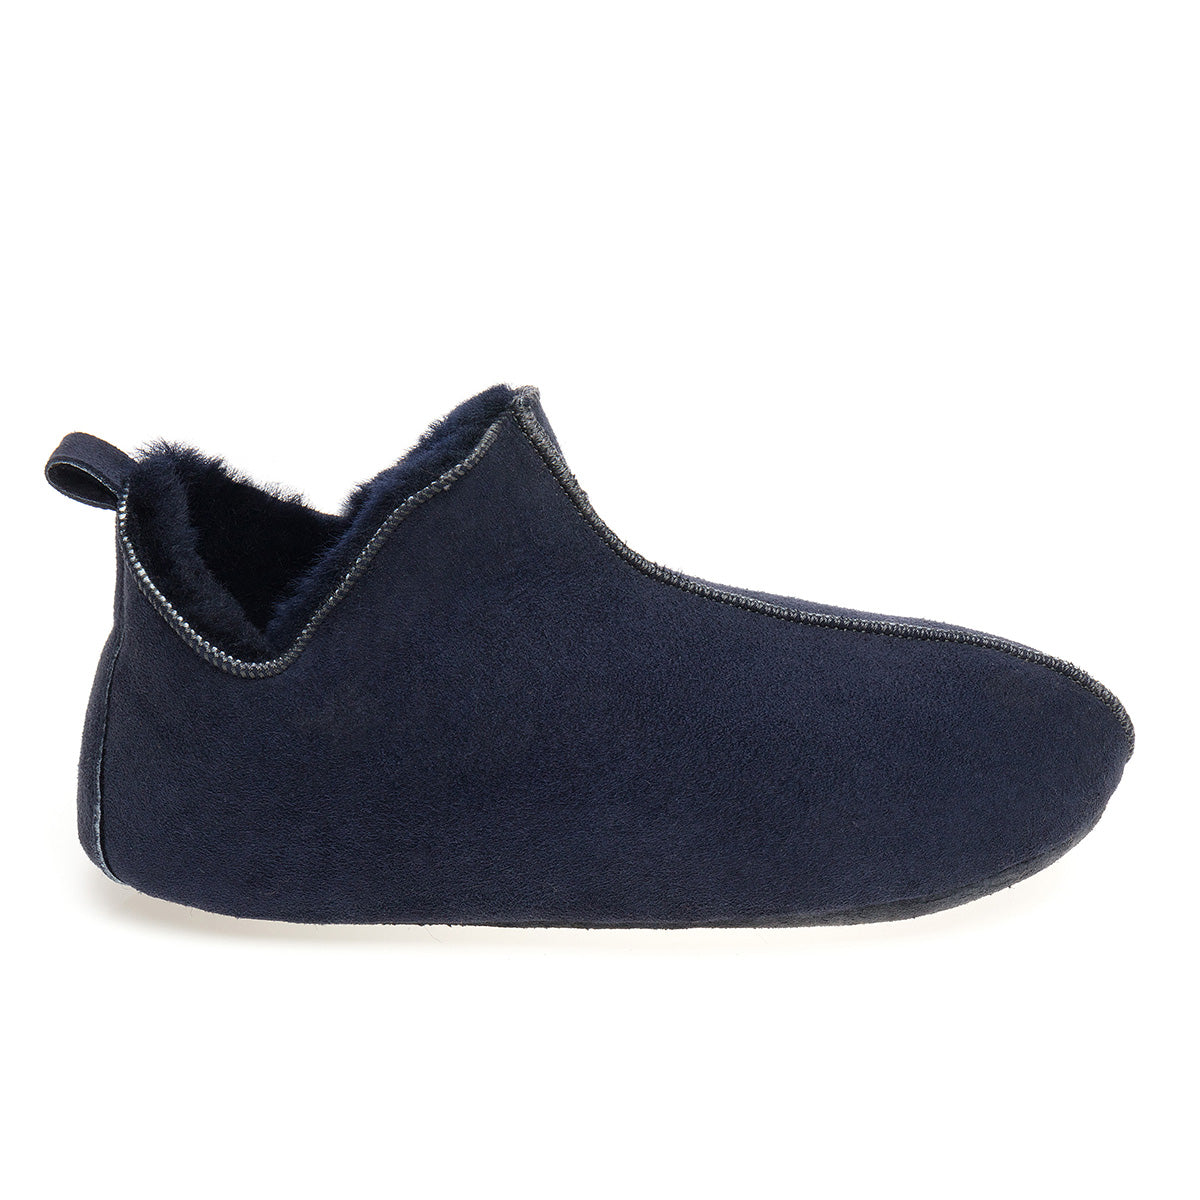 Berit Sheepskin Slippers/Yoga Shoe - Navy